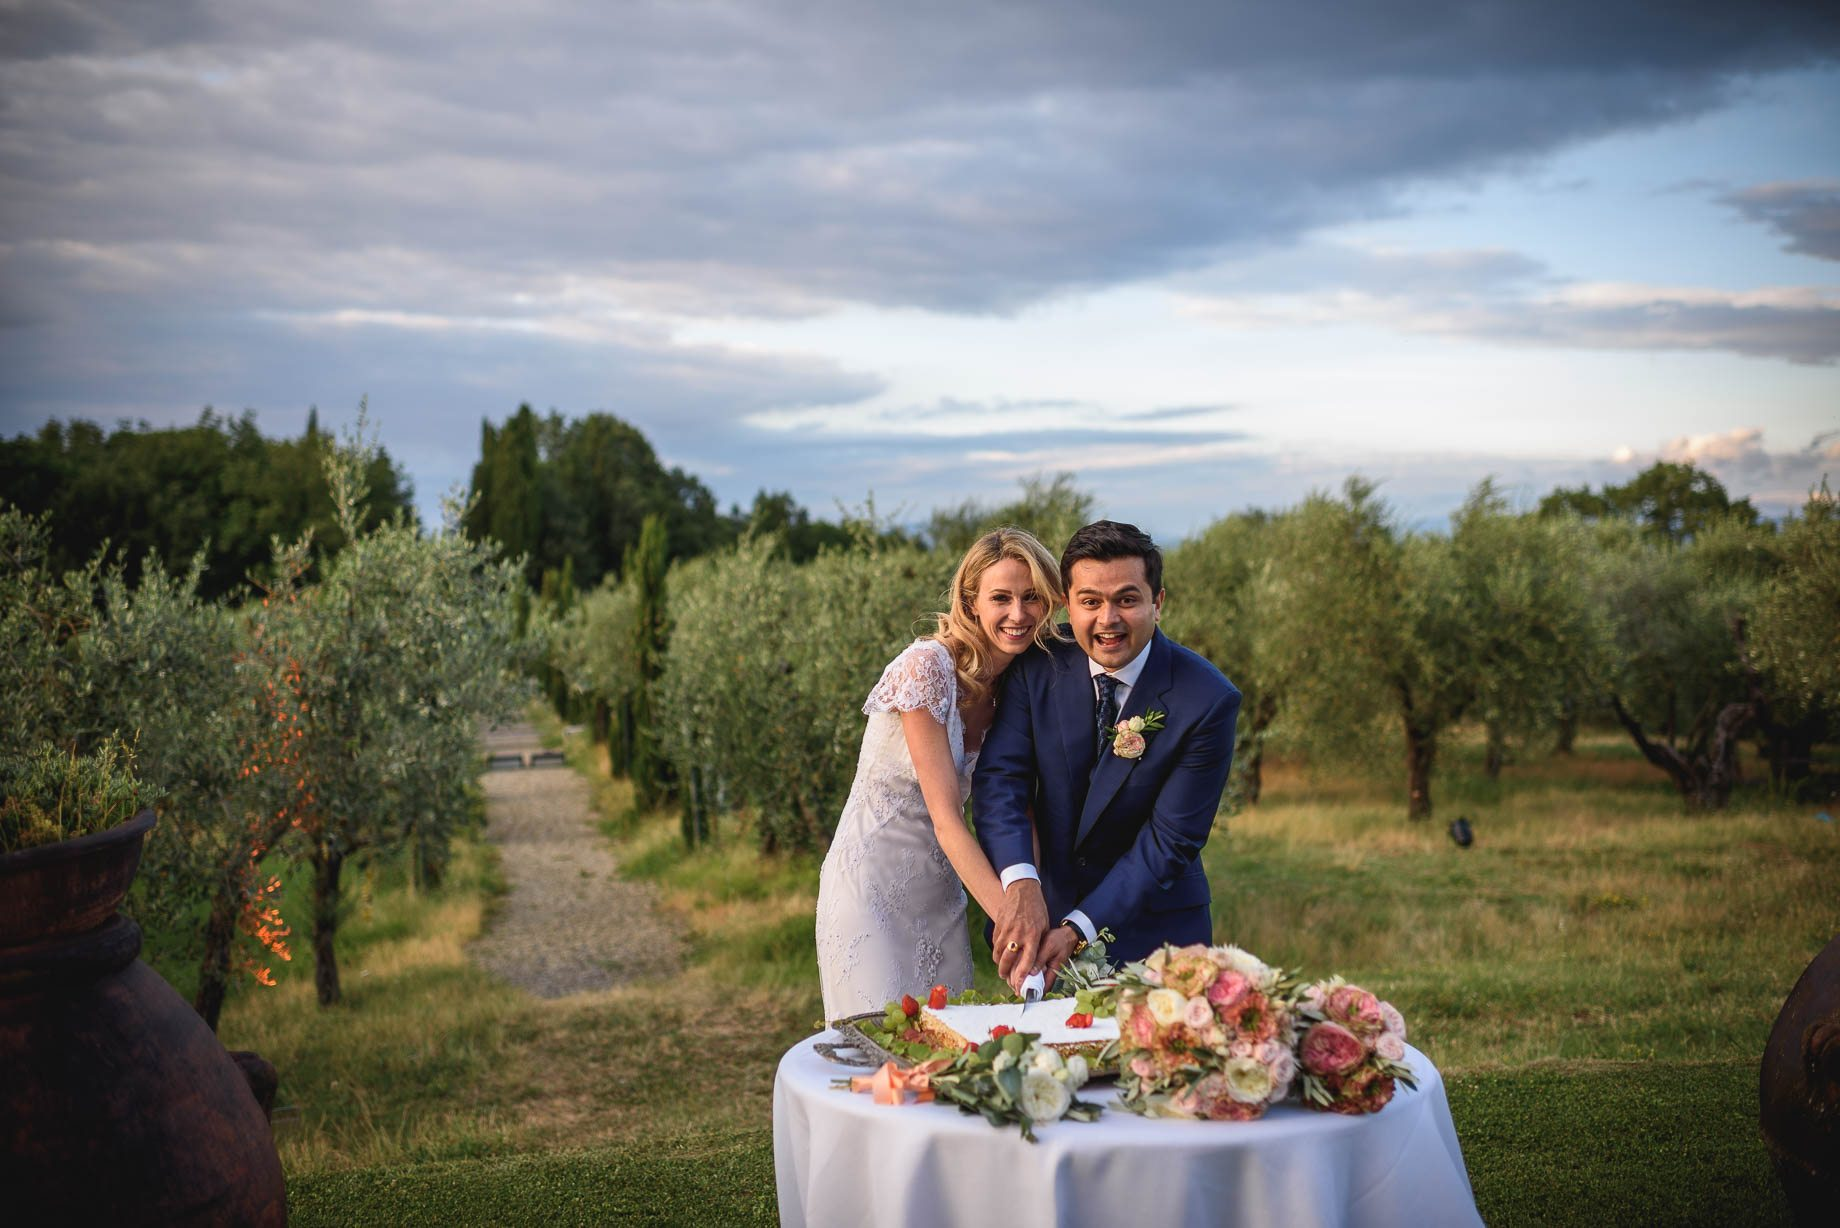 Tuscany wedding photography - Roisin and Moubin - Guy Collier Photography (167 of 251)